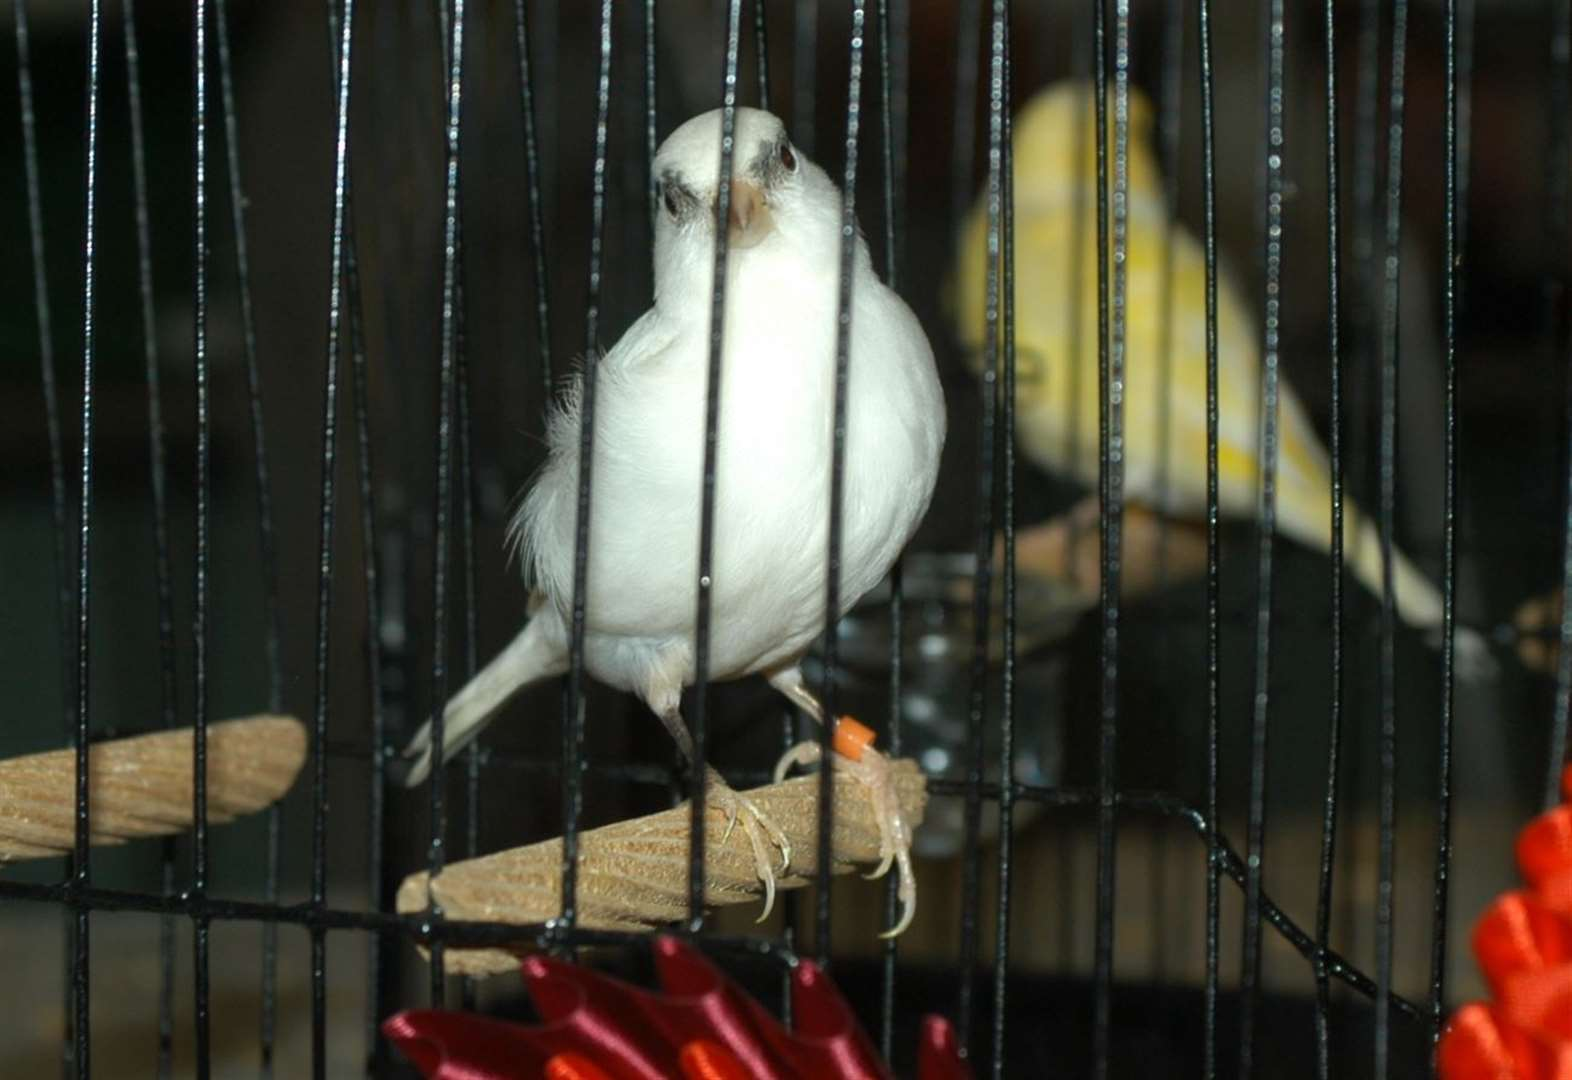 Owner spitting feathers after theft of 40 birds